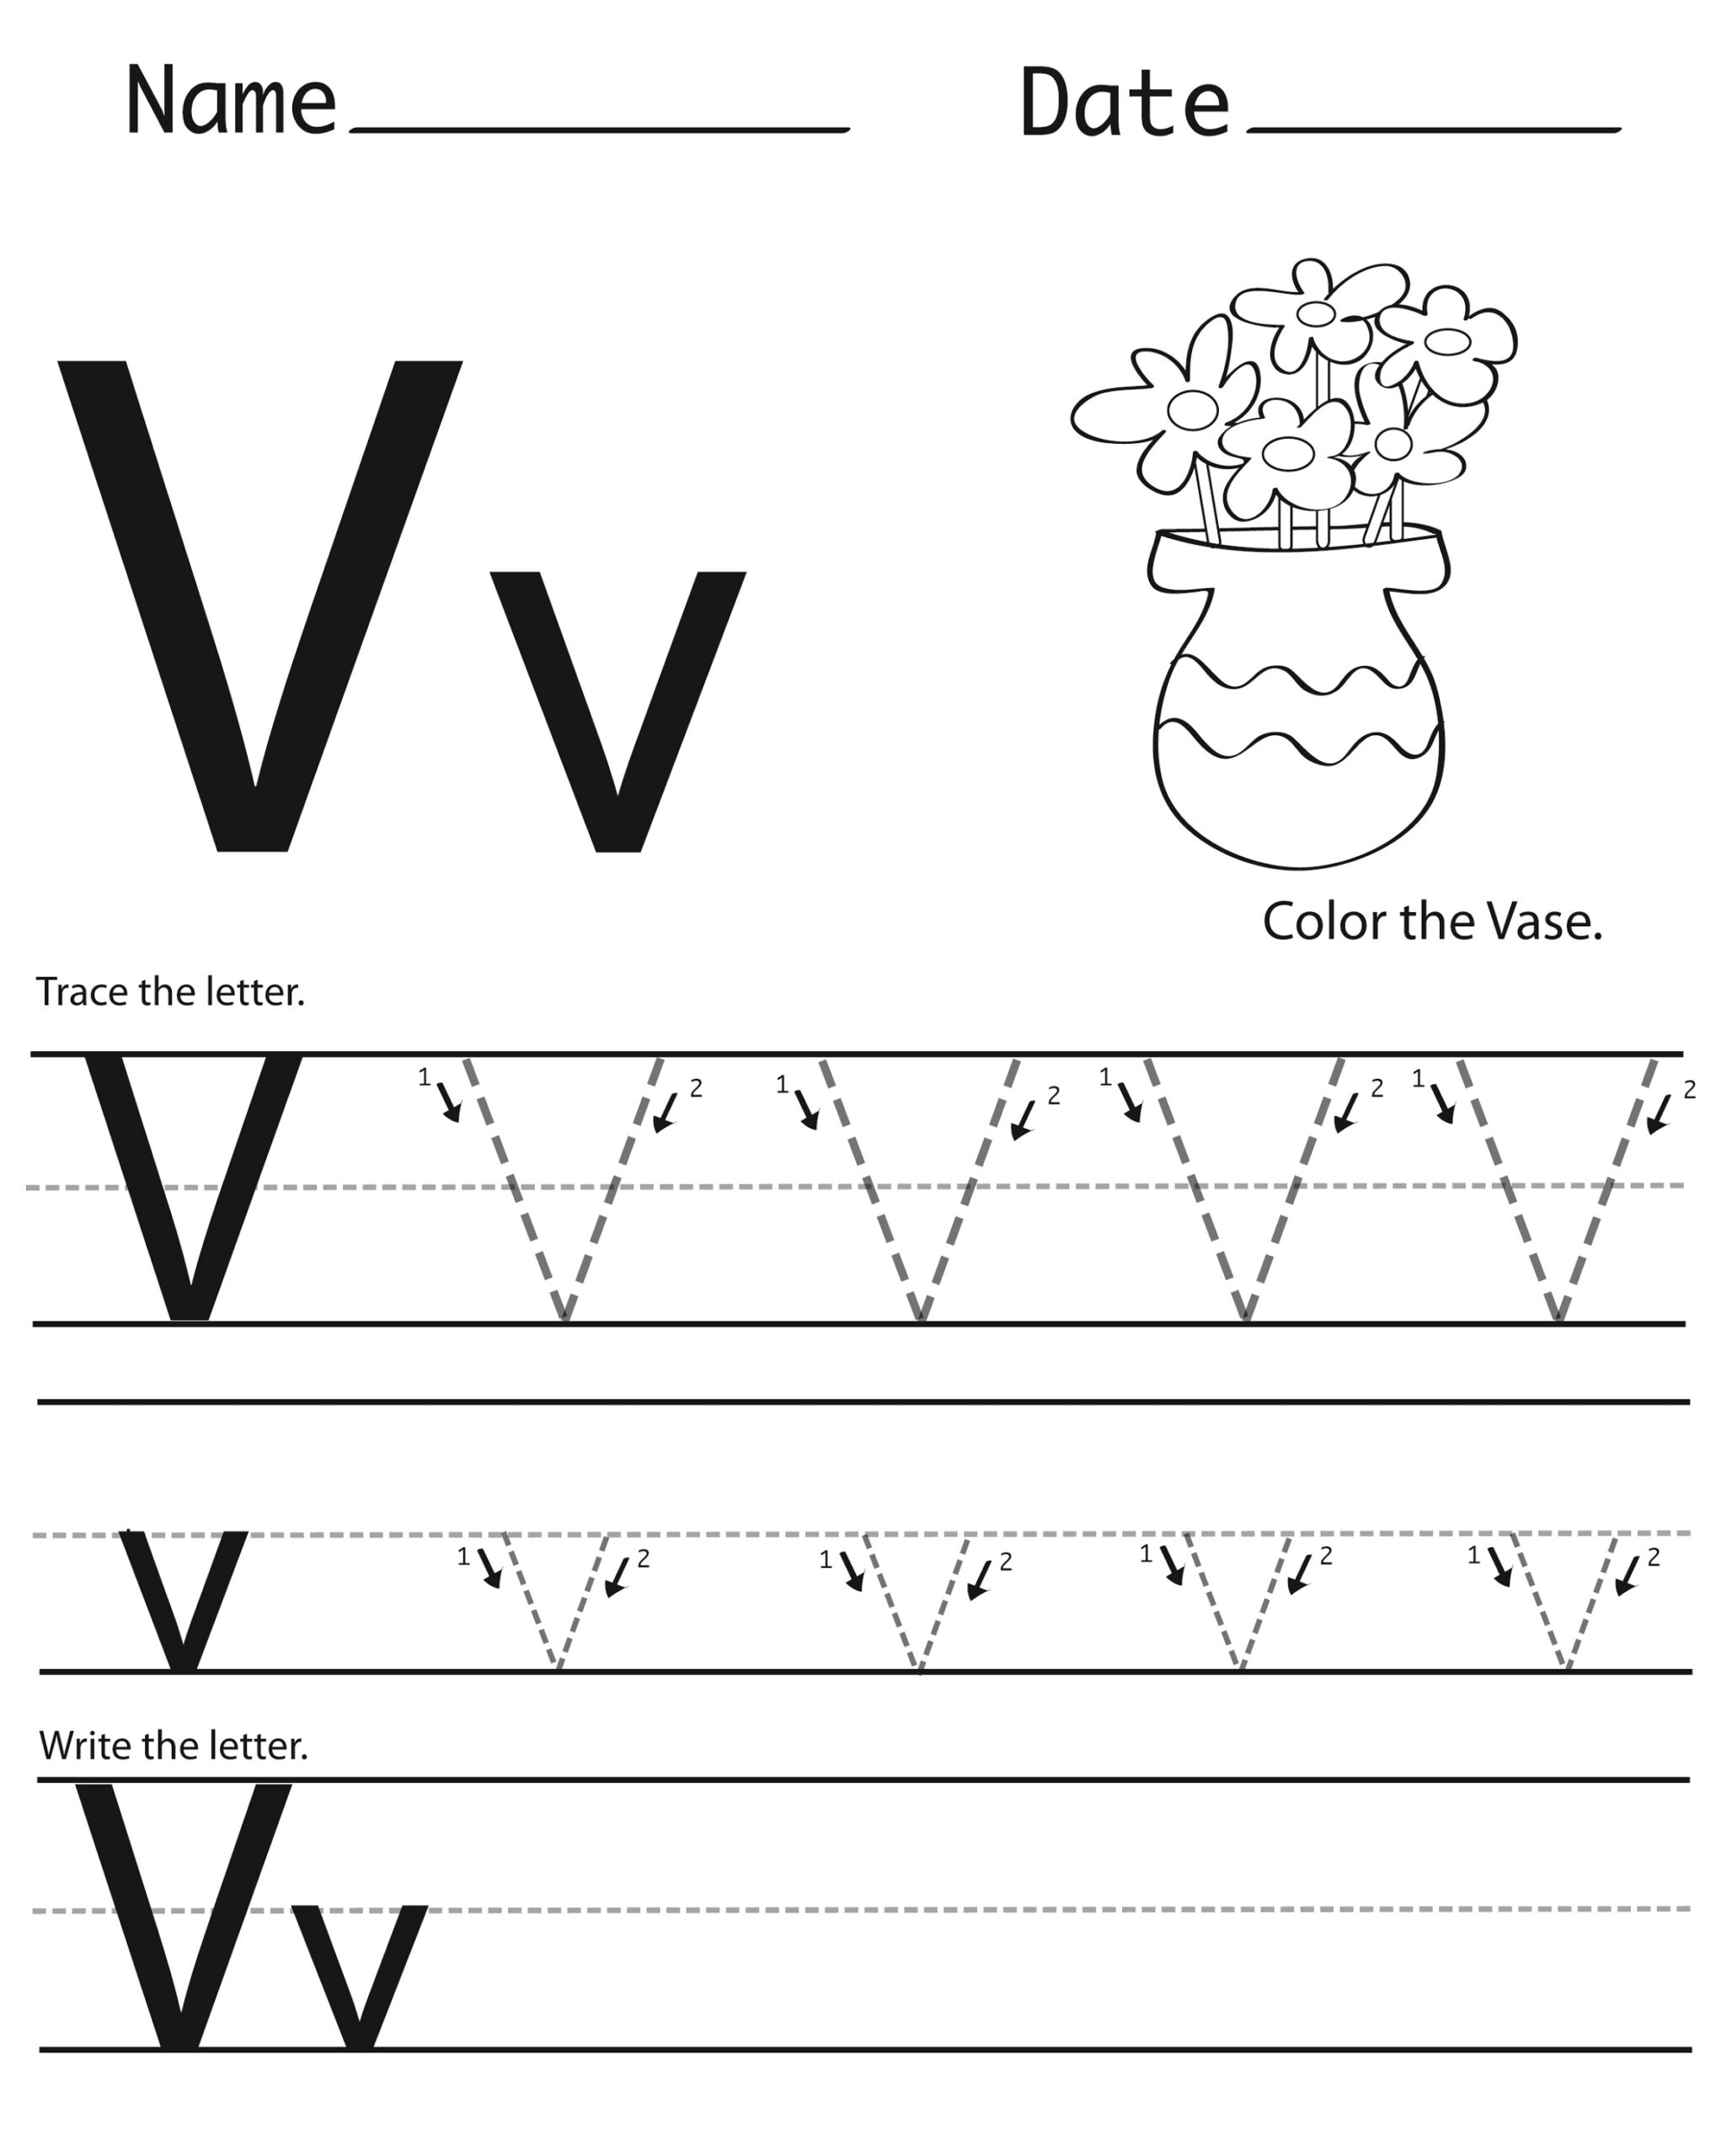 Letter V Worksheets To Print | Activity Shelter within Letter V Tracing Pages